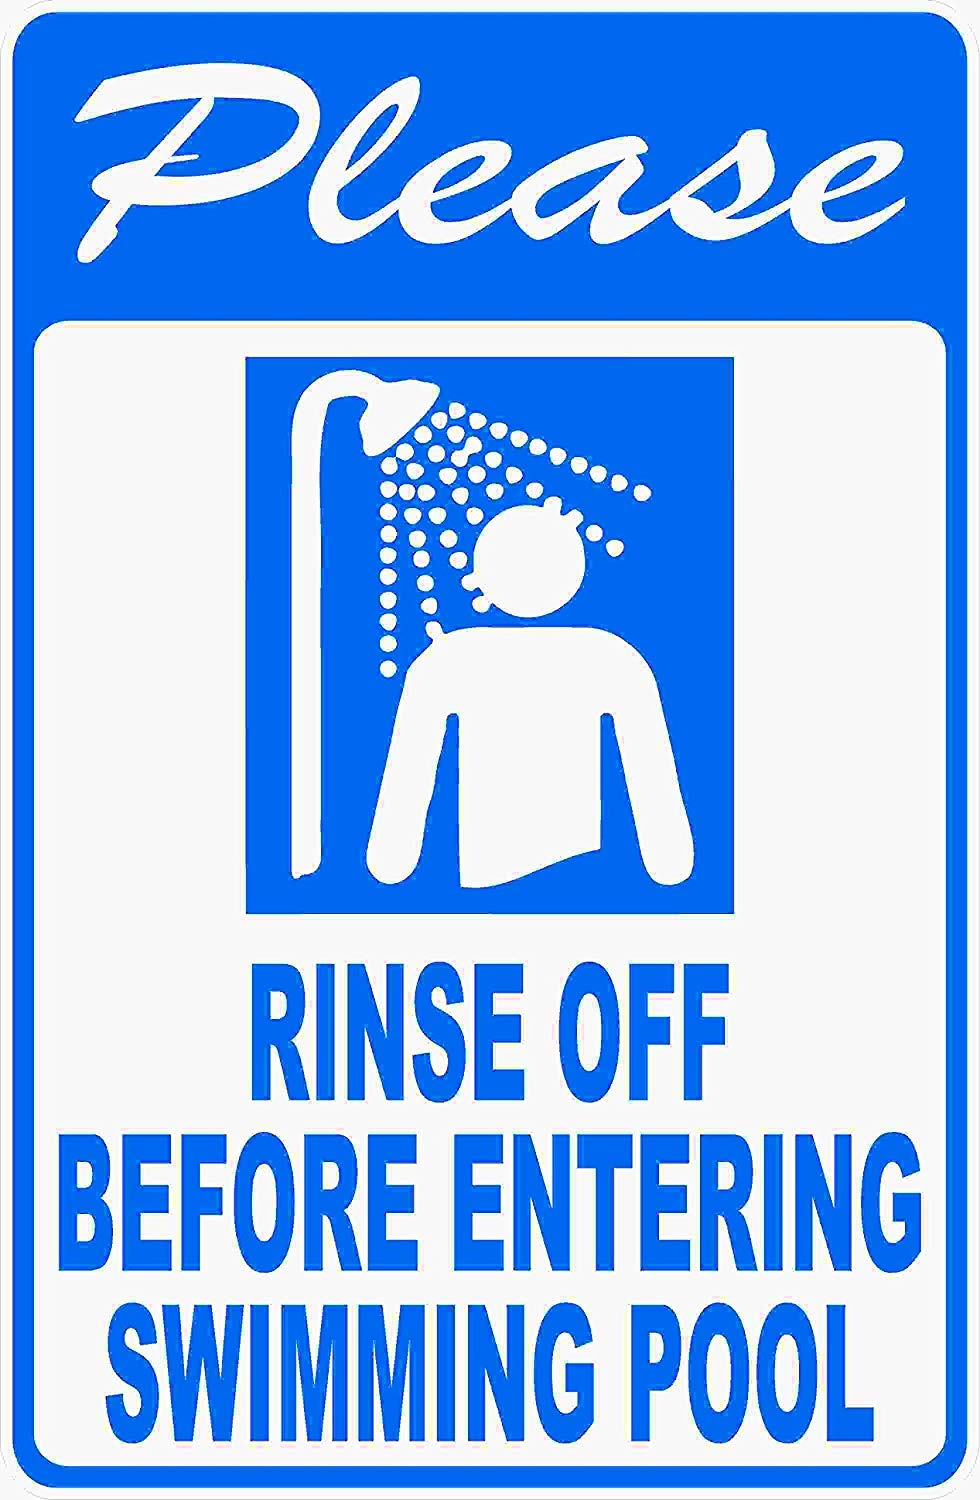 Eletina Case Wall Signs Please Rinse Off Before Entering Swimming Pool Sign 16x24 Metal Rules Pools Shower by Eletina Case